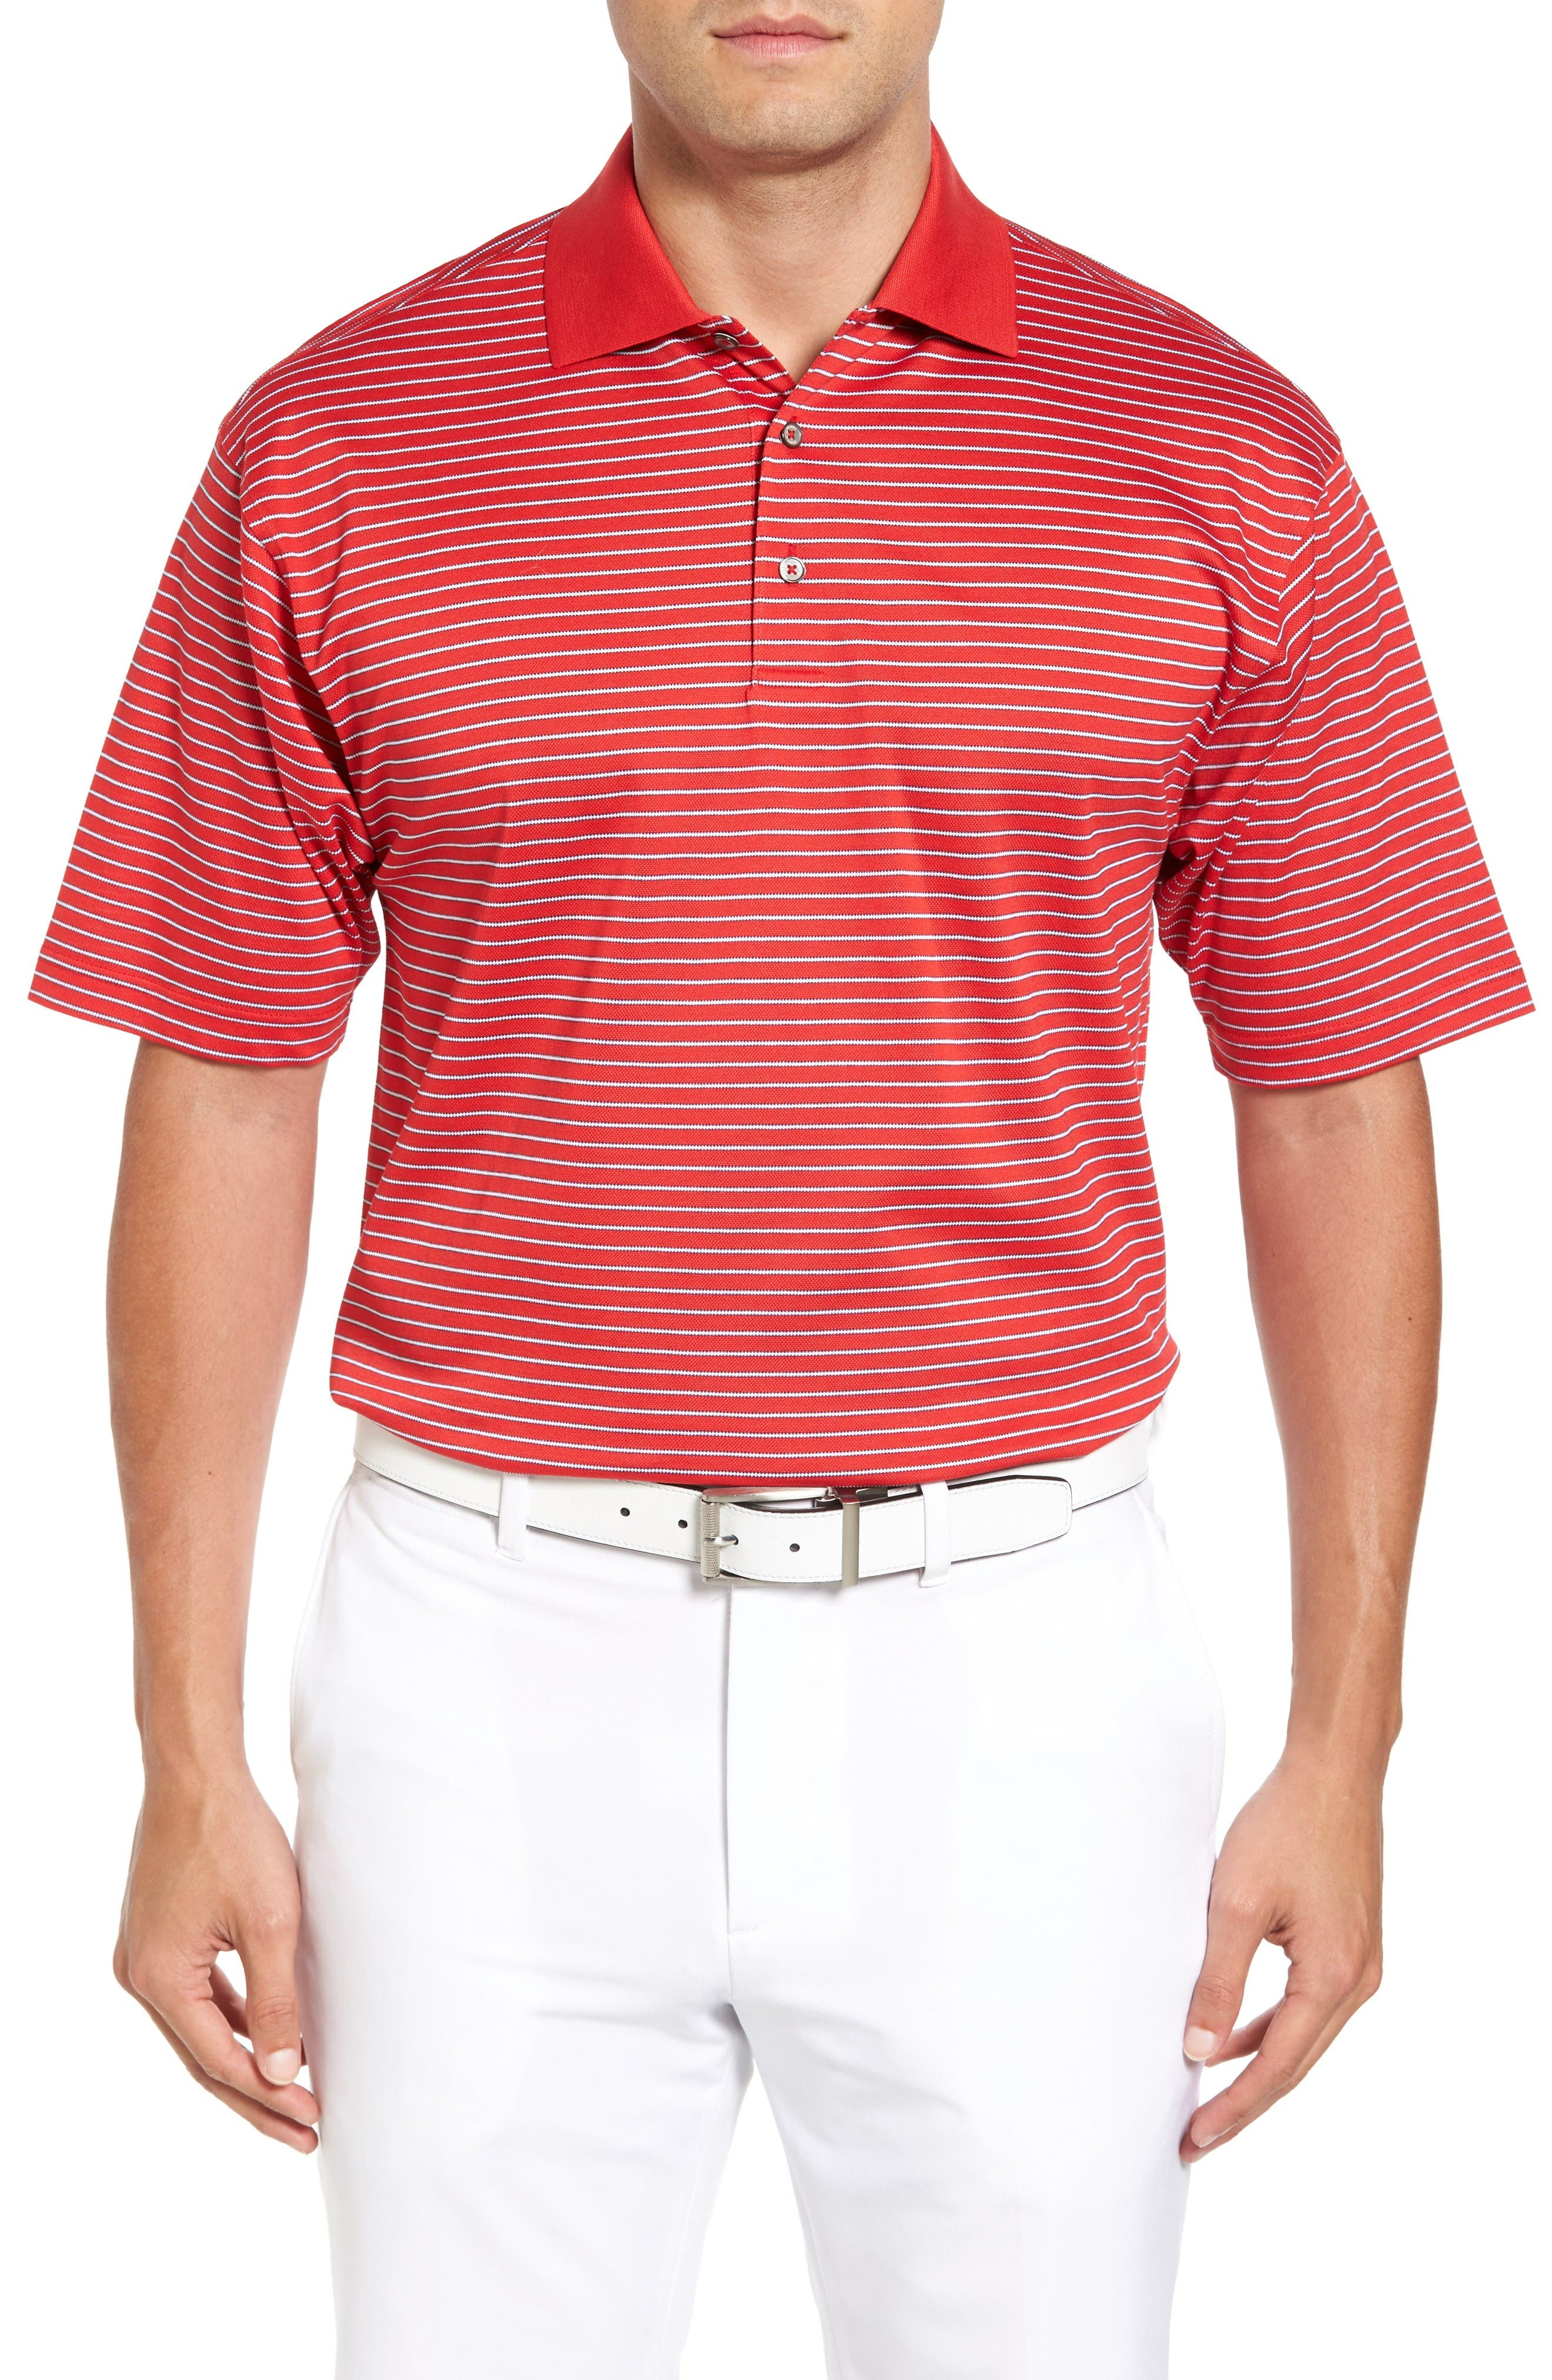 Bobby Jones Dot Stripe Golf Polo